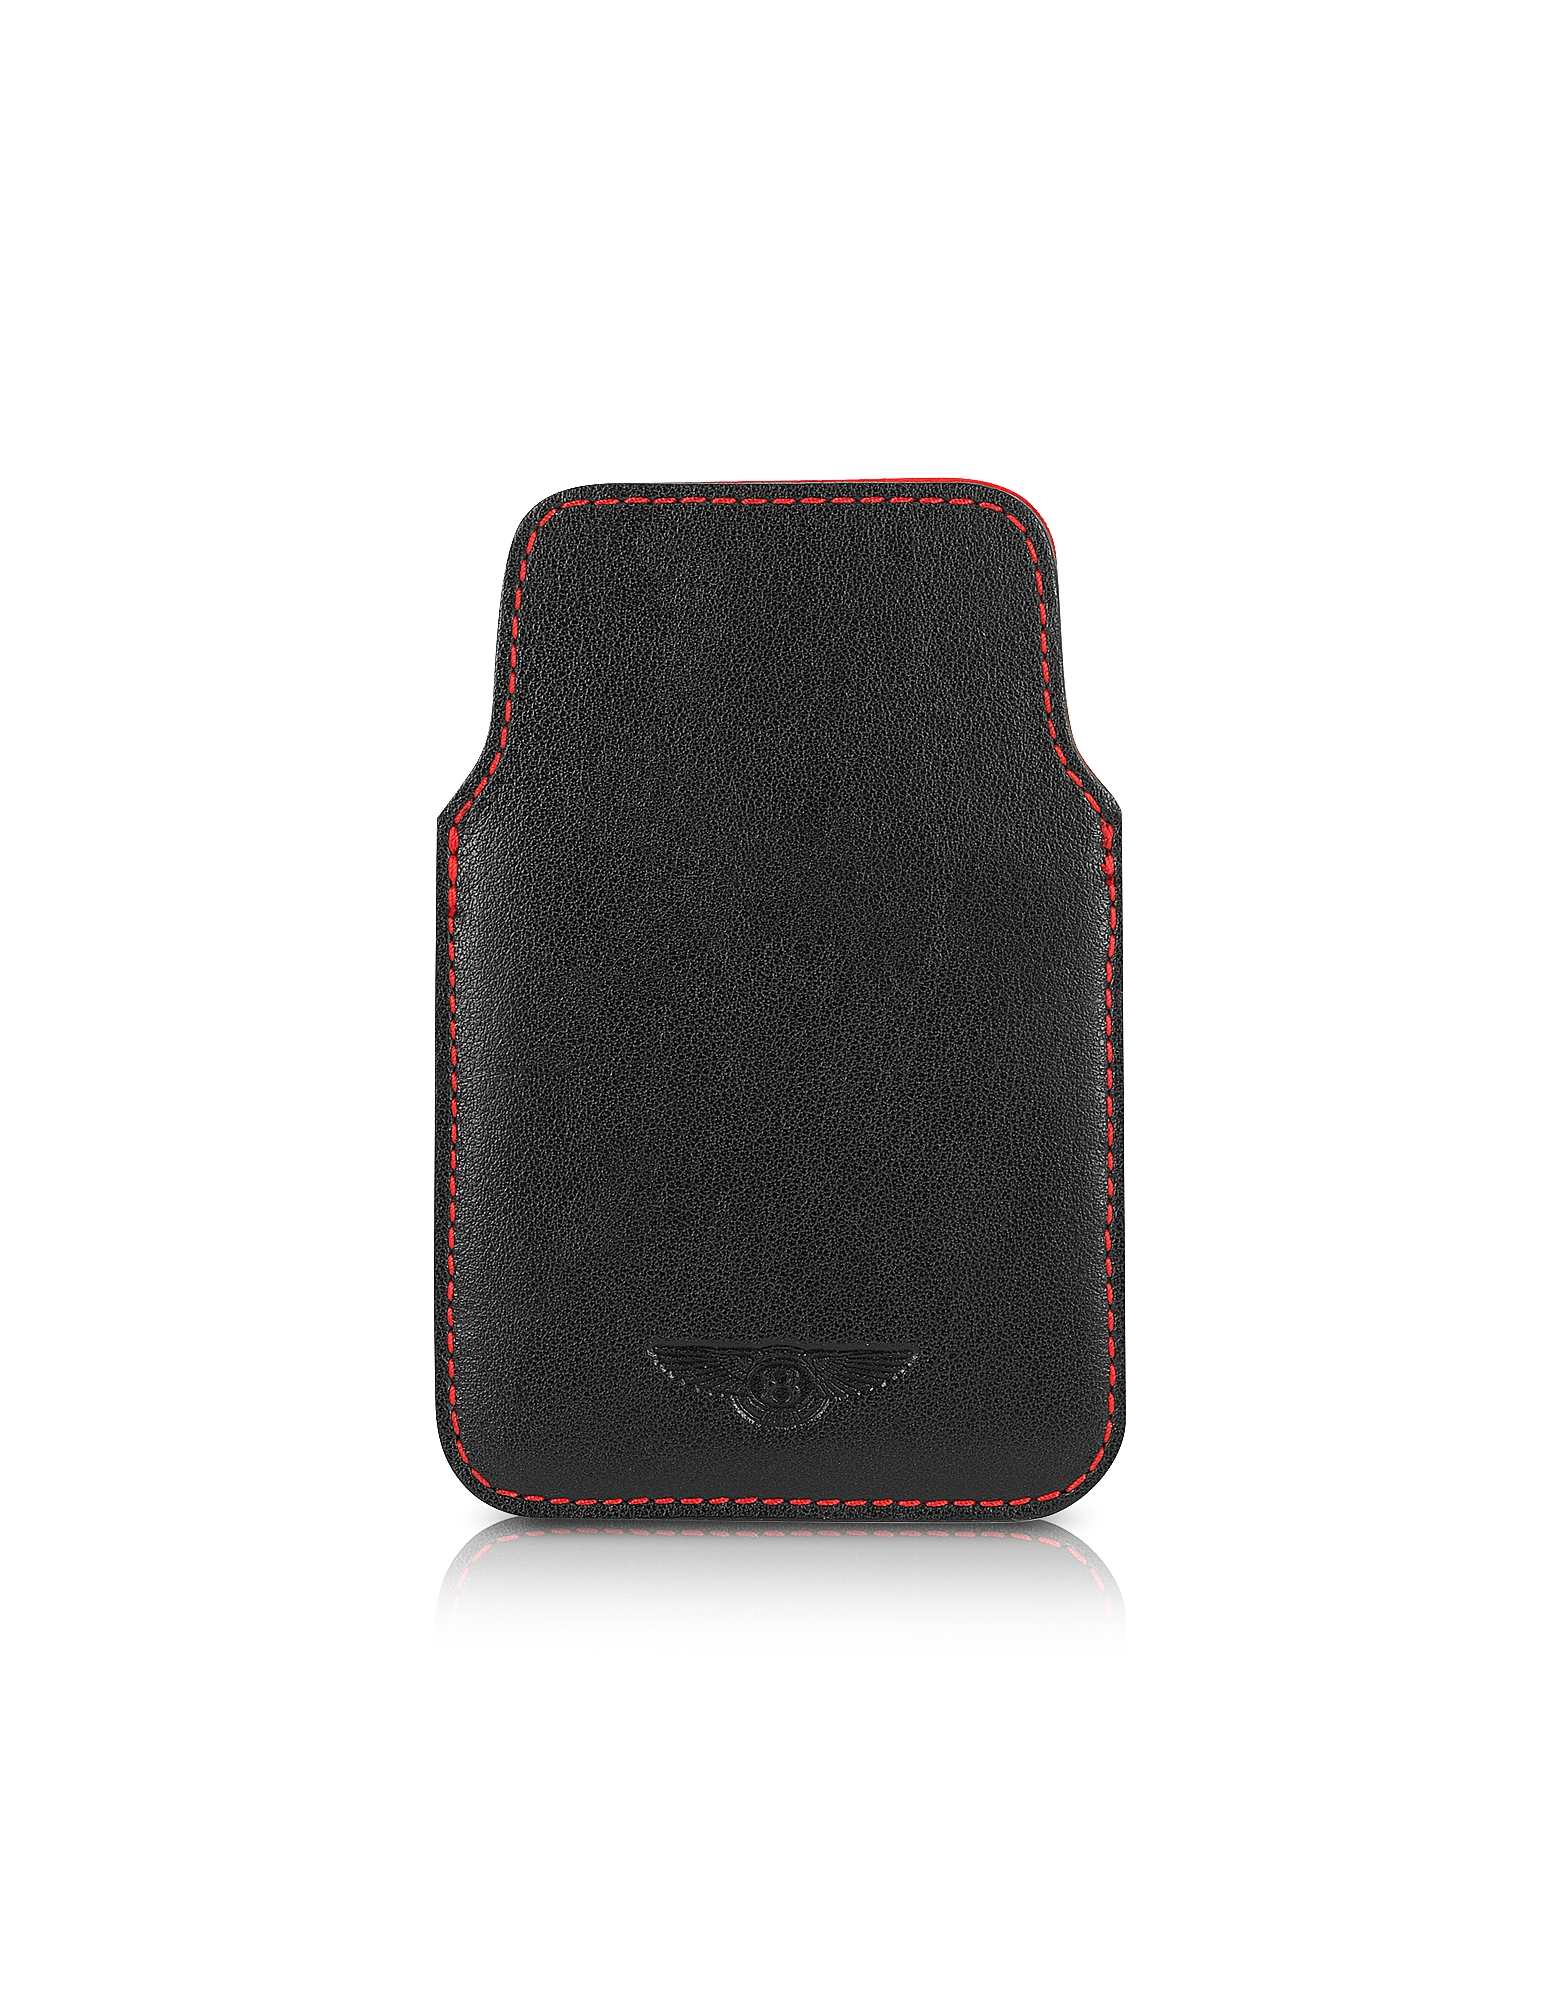 Bentley Small Leather Goods, Ettinger Leather Blackberry Case